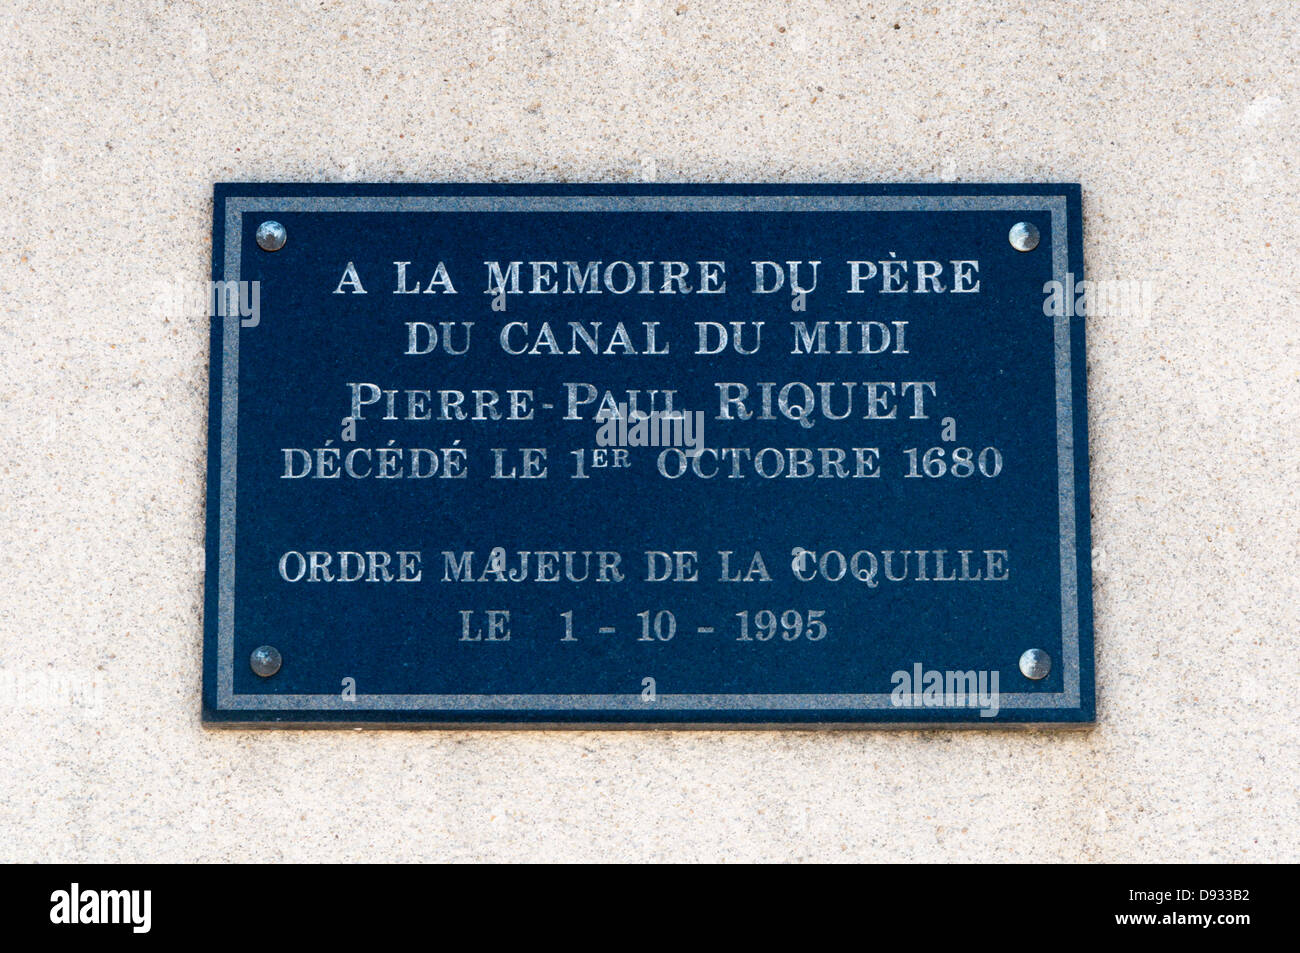 A memorial in Marseillan to Pierre-Paul Riquet, the architect of the Canal du Midi which reaches the Mediterranean - Stock Image